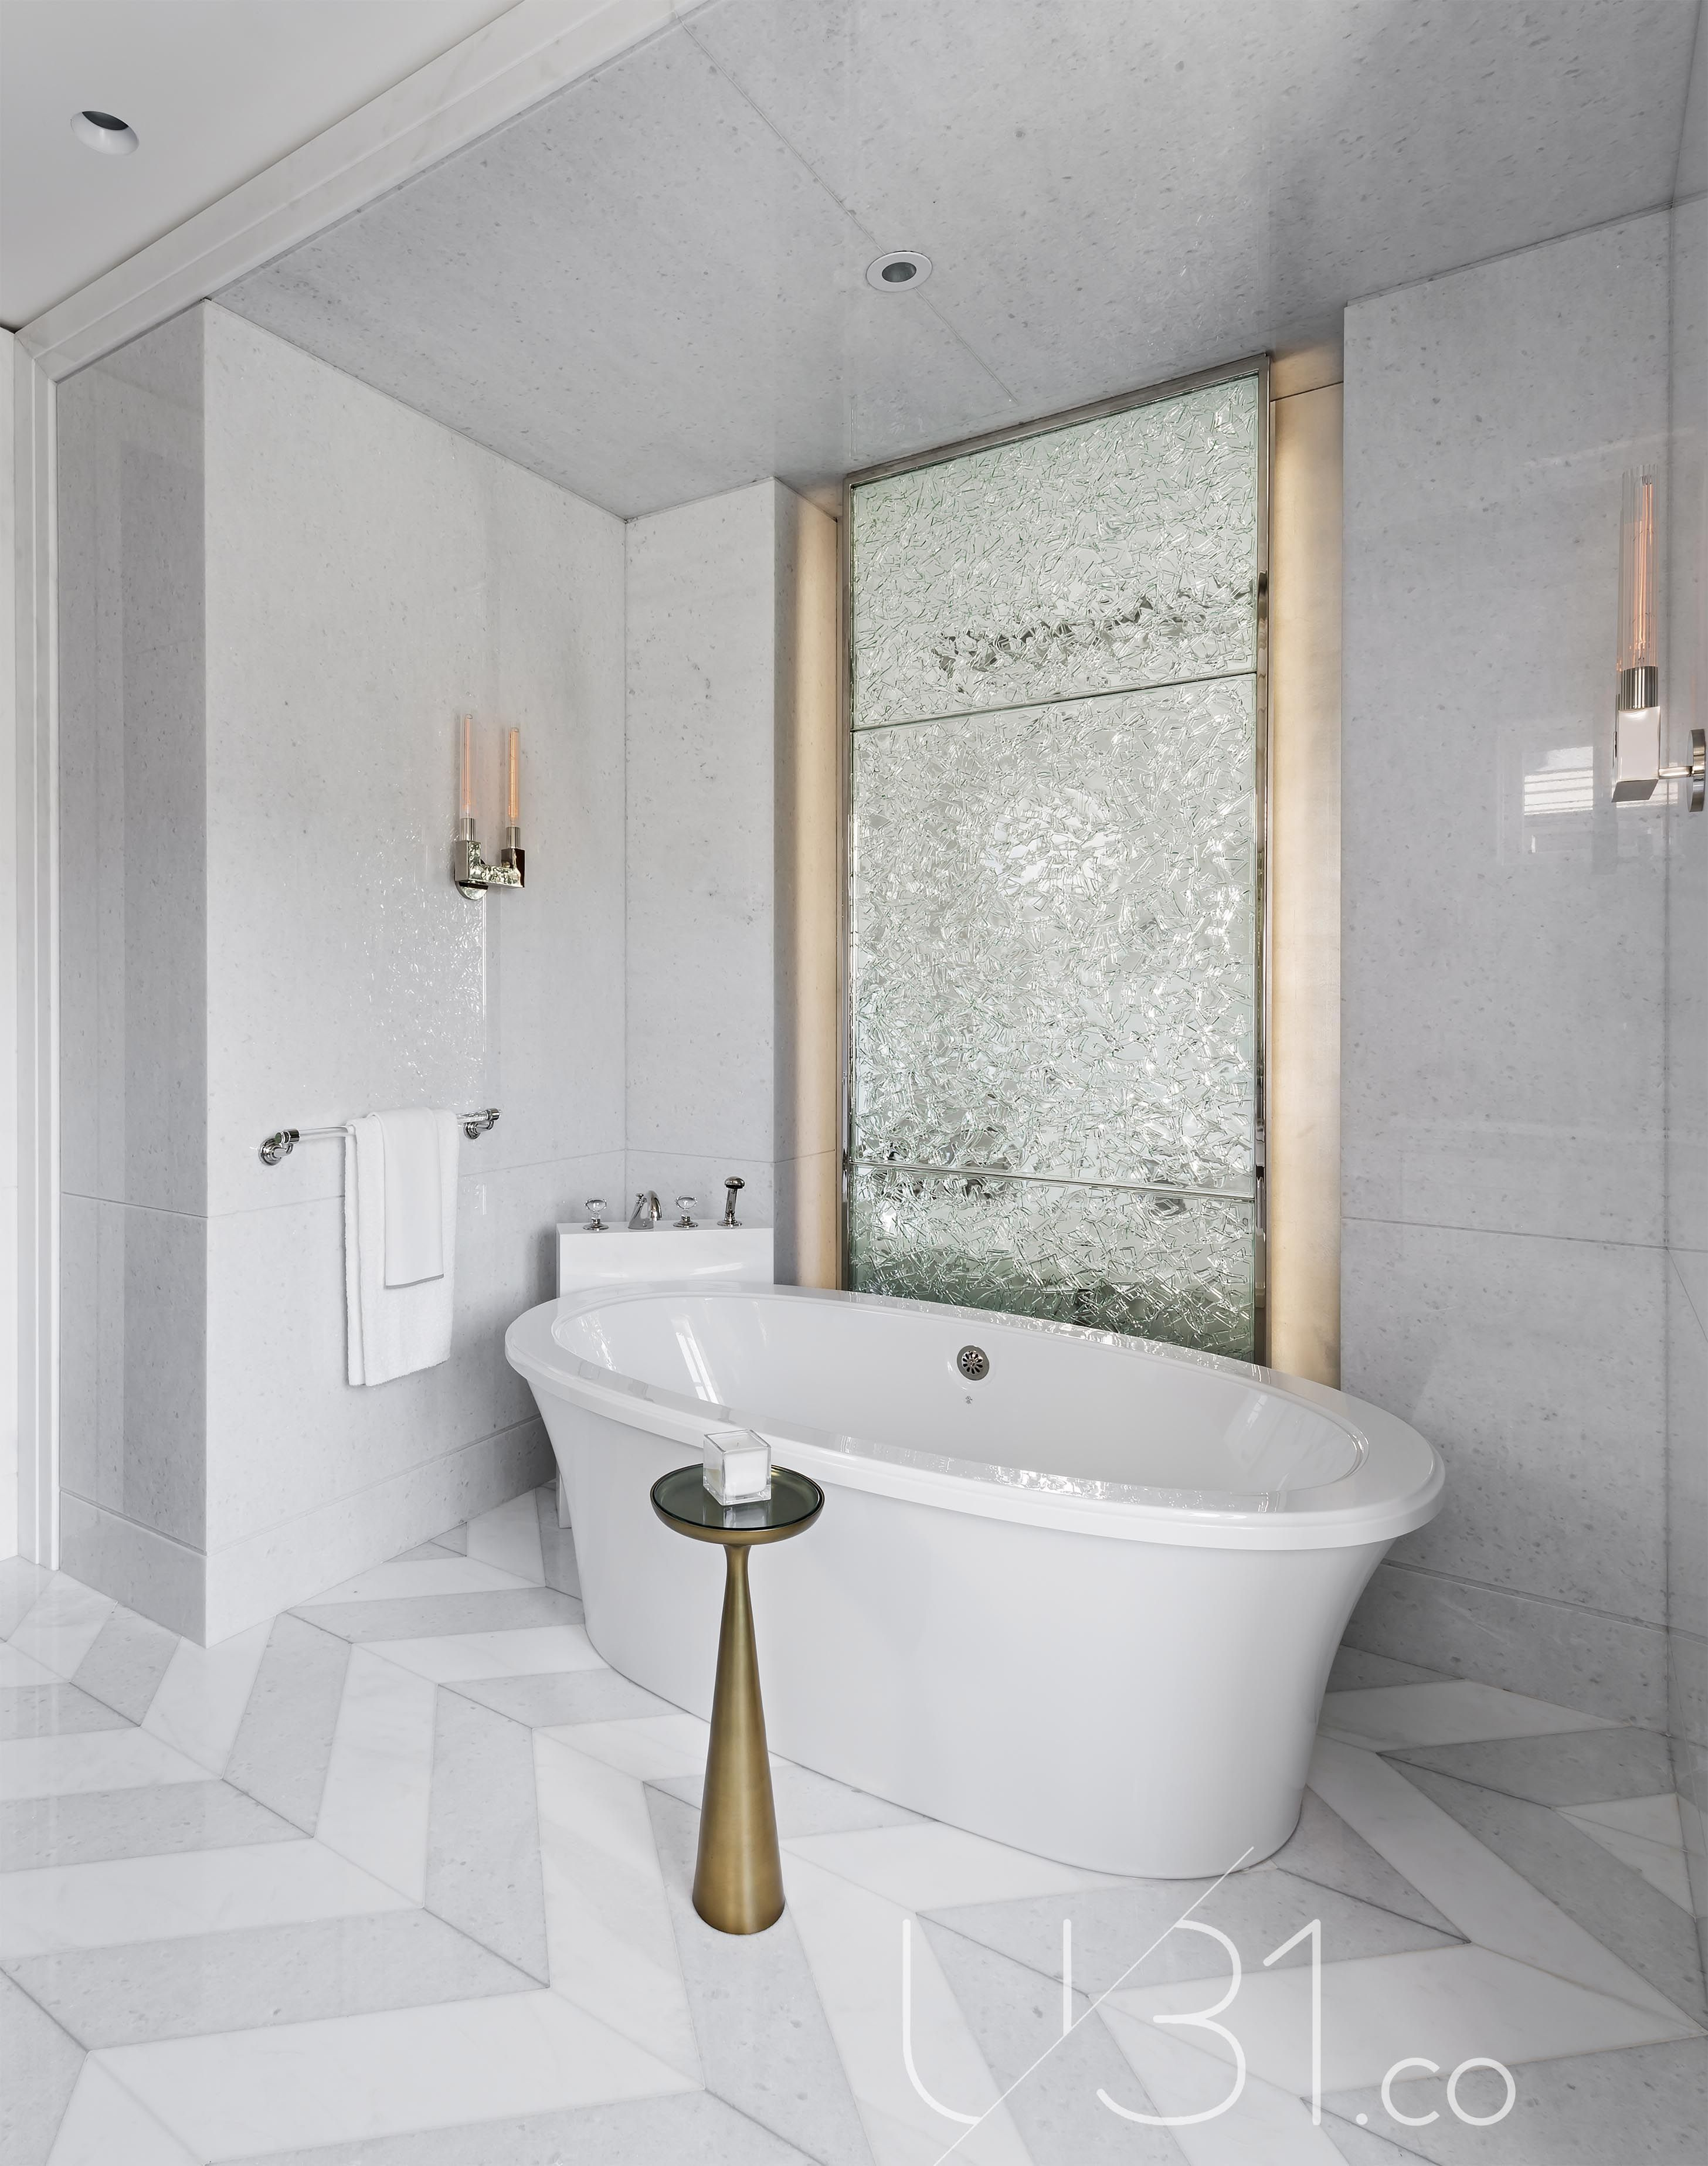 Classic Bathroom Designs | Awesome Bedroom Ideas | Pinterest ...